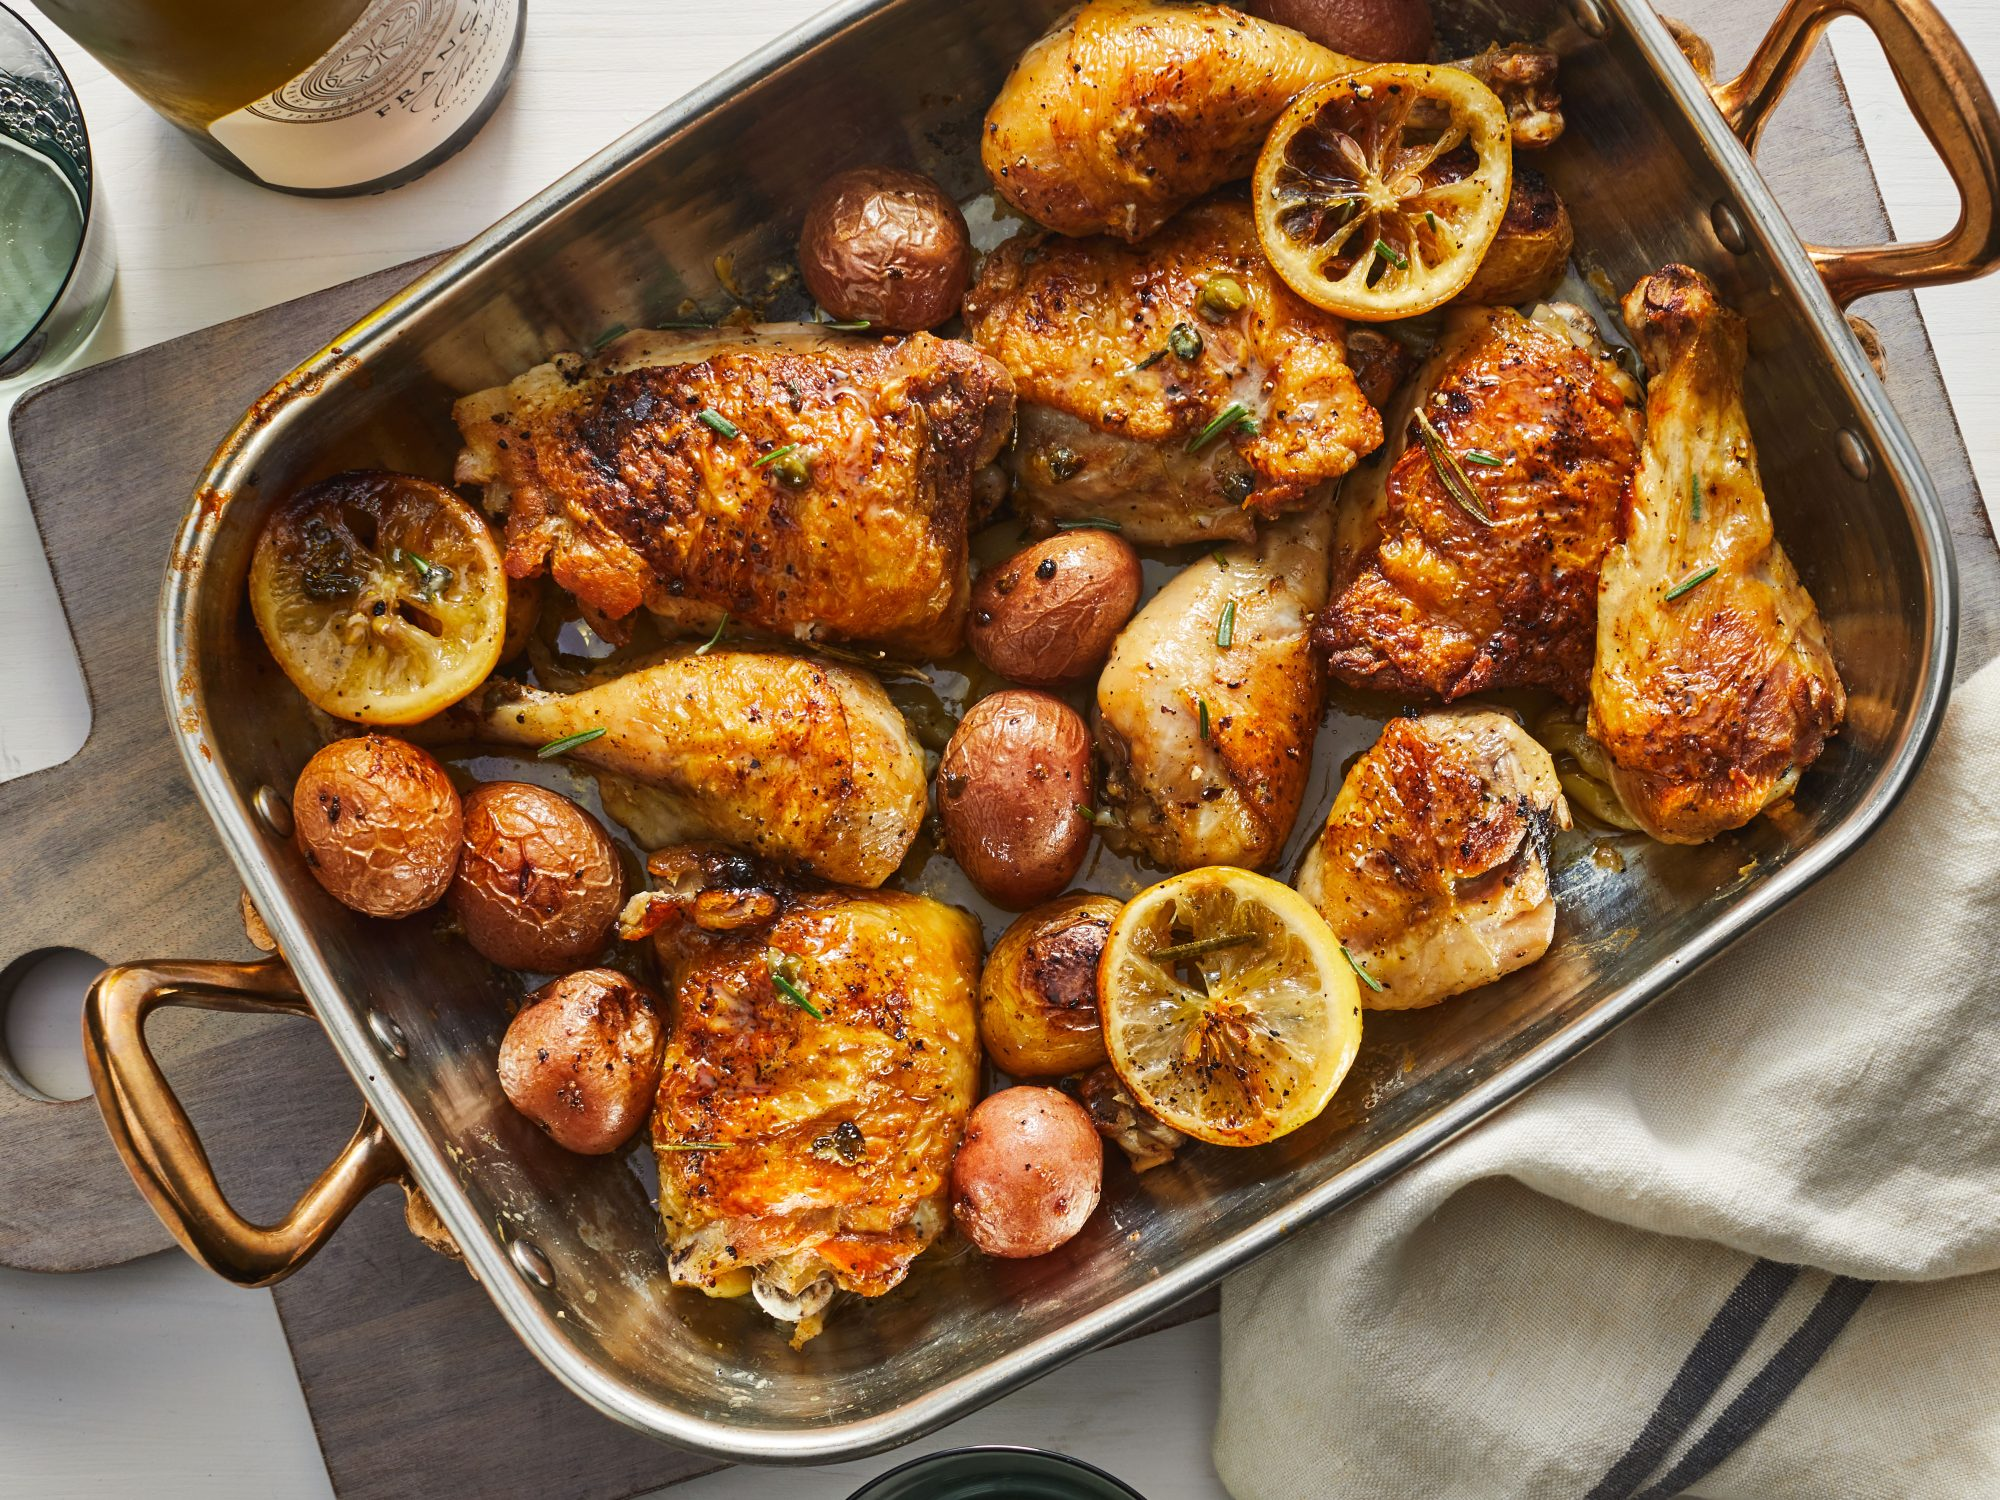 mr - Lemon-Rosemary-Garlic Chicken and Potatoes